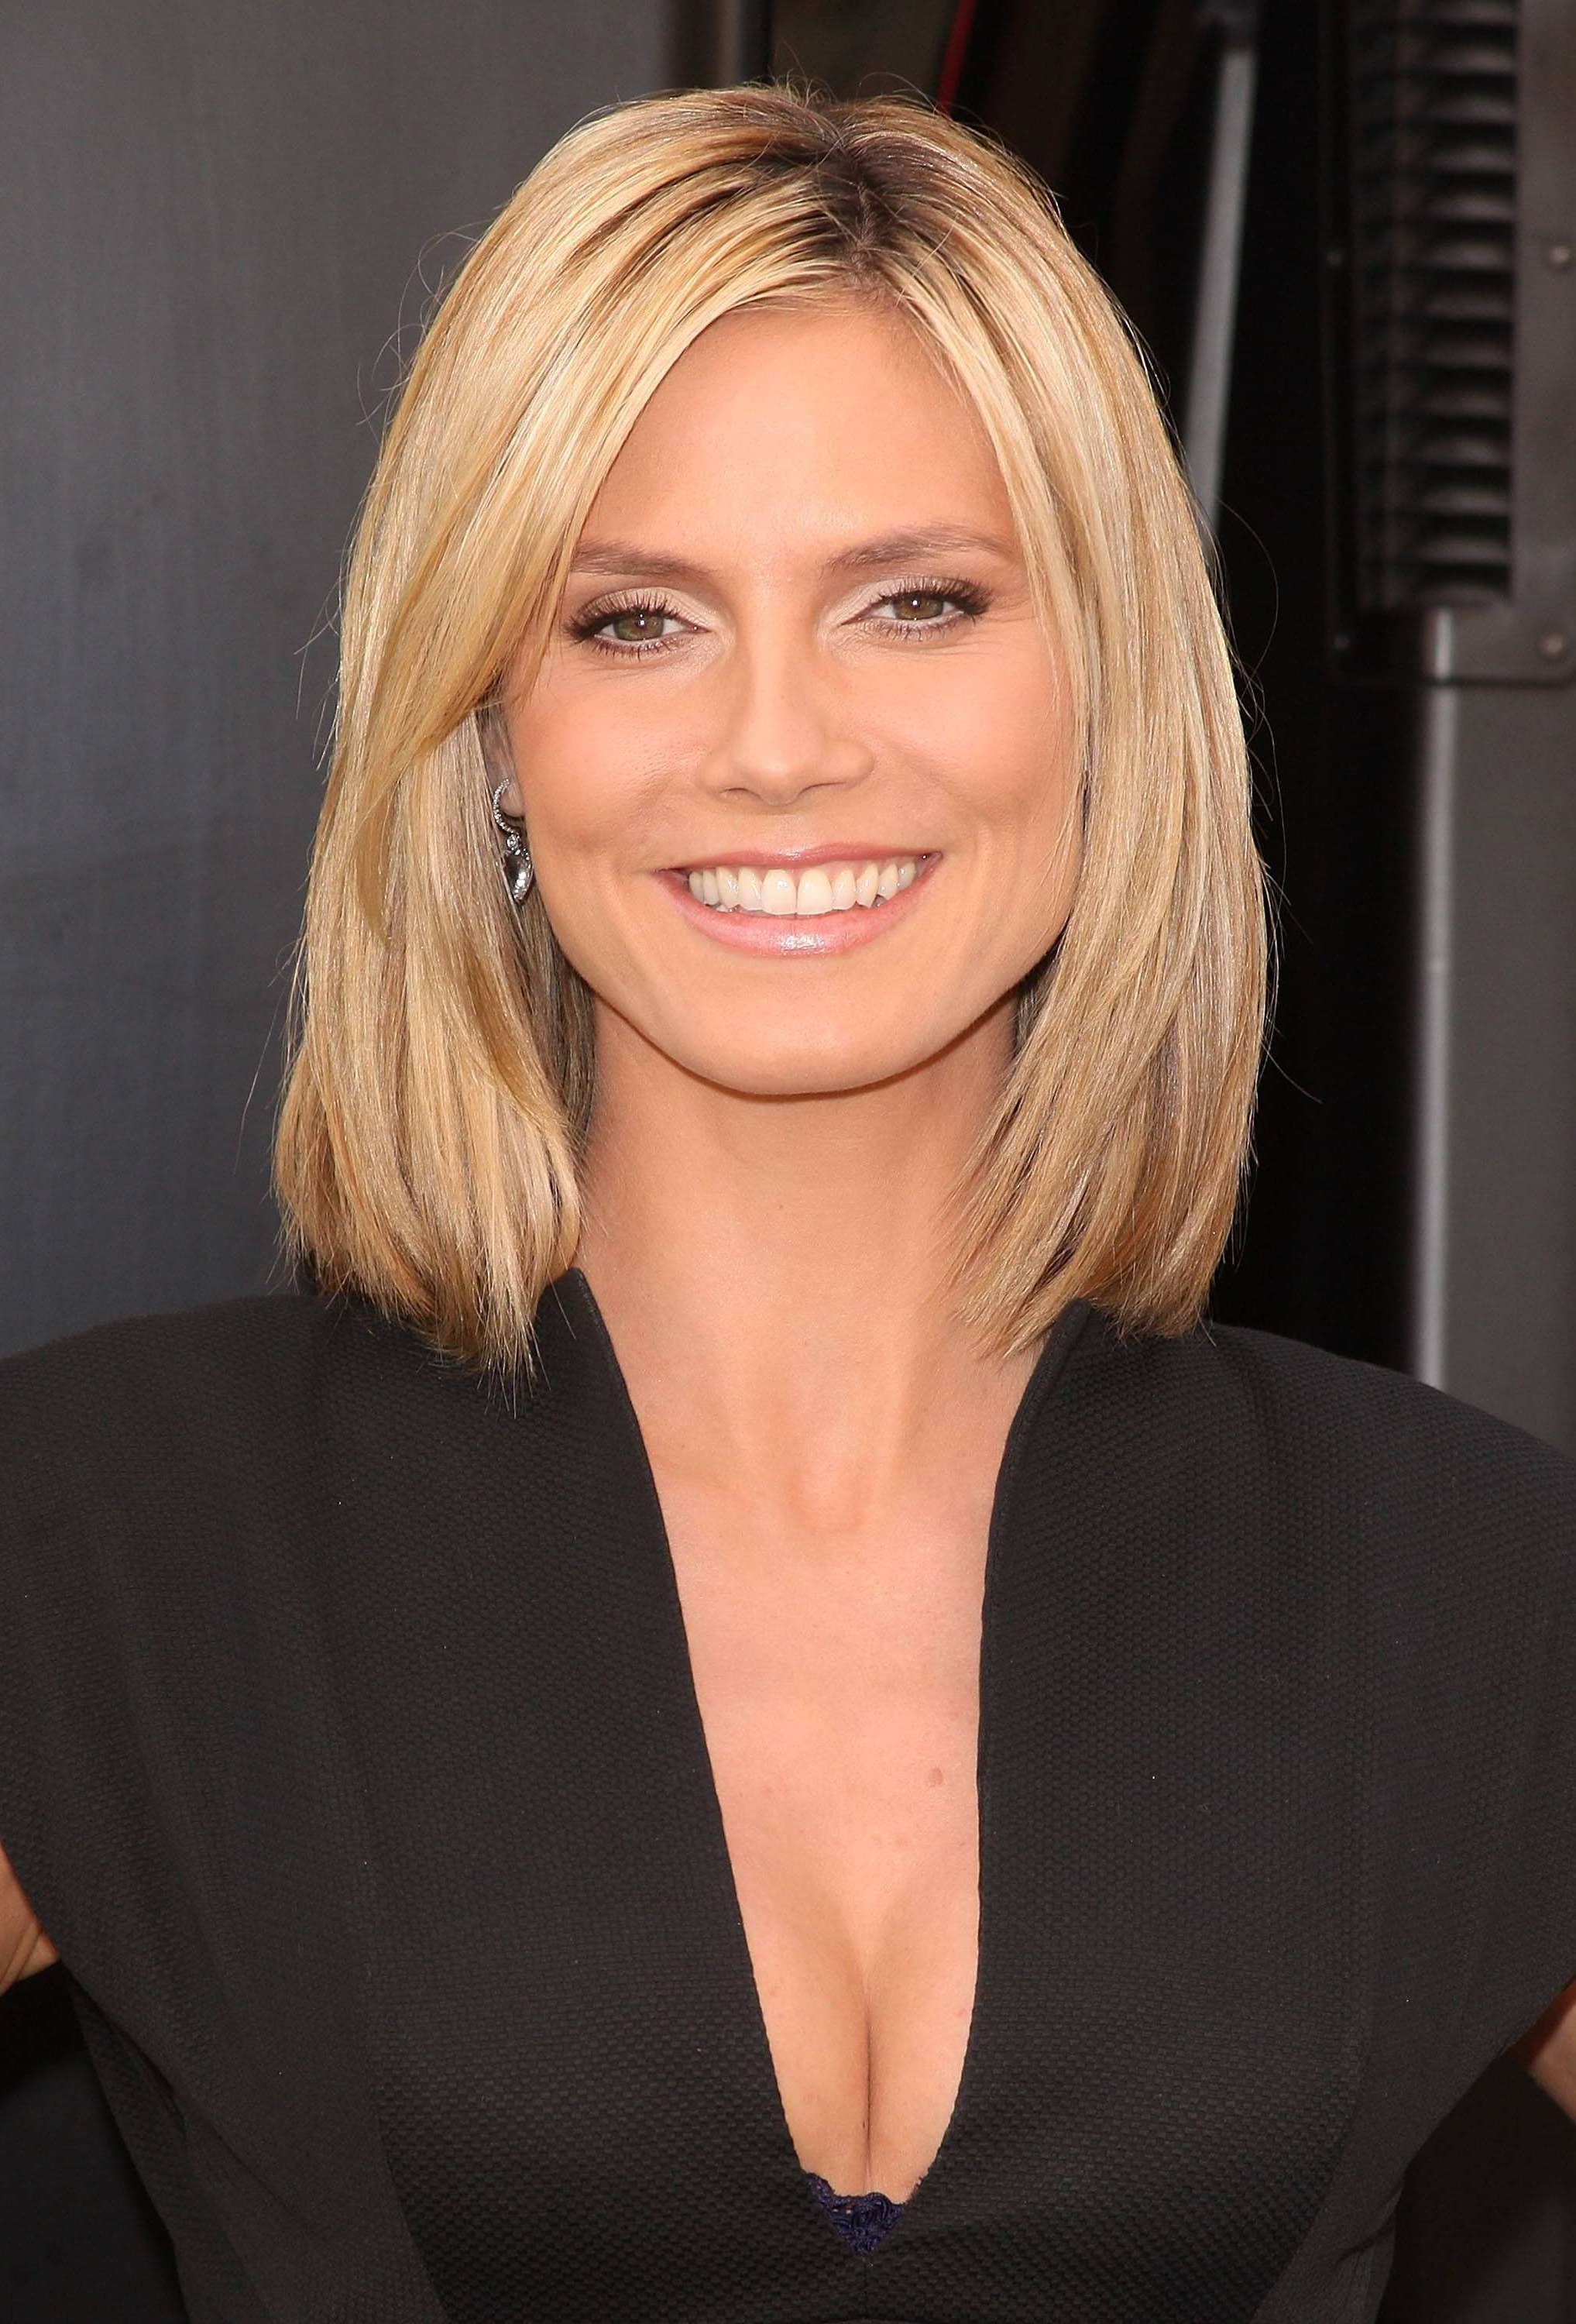 Find Out Full Gallery Of Awesome Heidi Klum Short Hair Pertaining To Heidi Klum Short Haircuts (View 11 of 25)